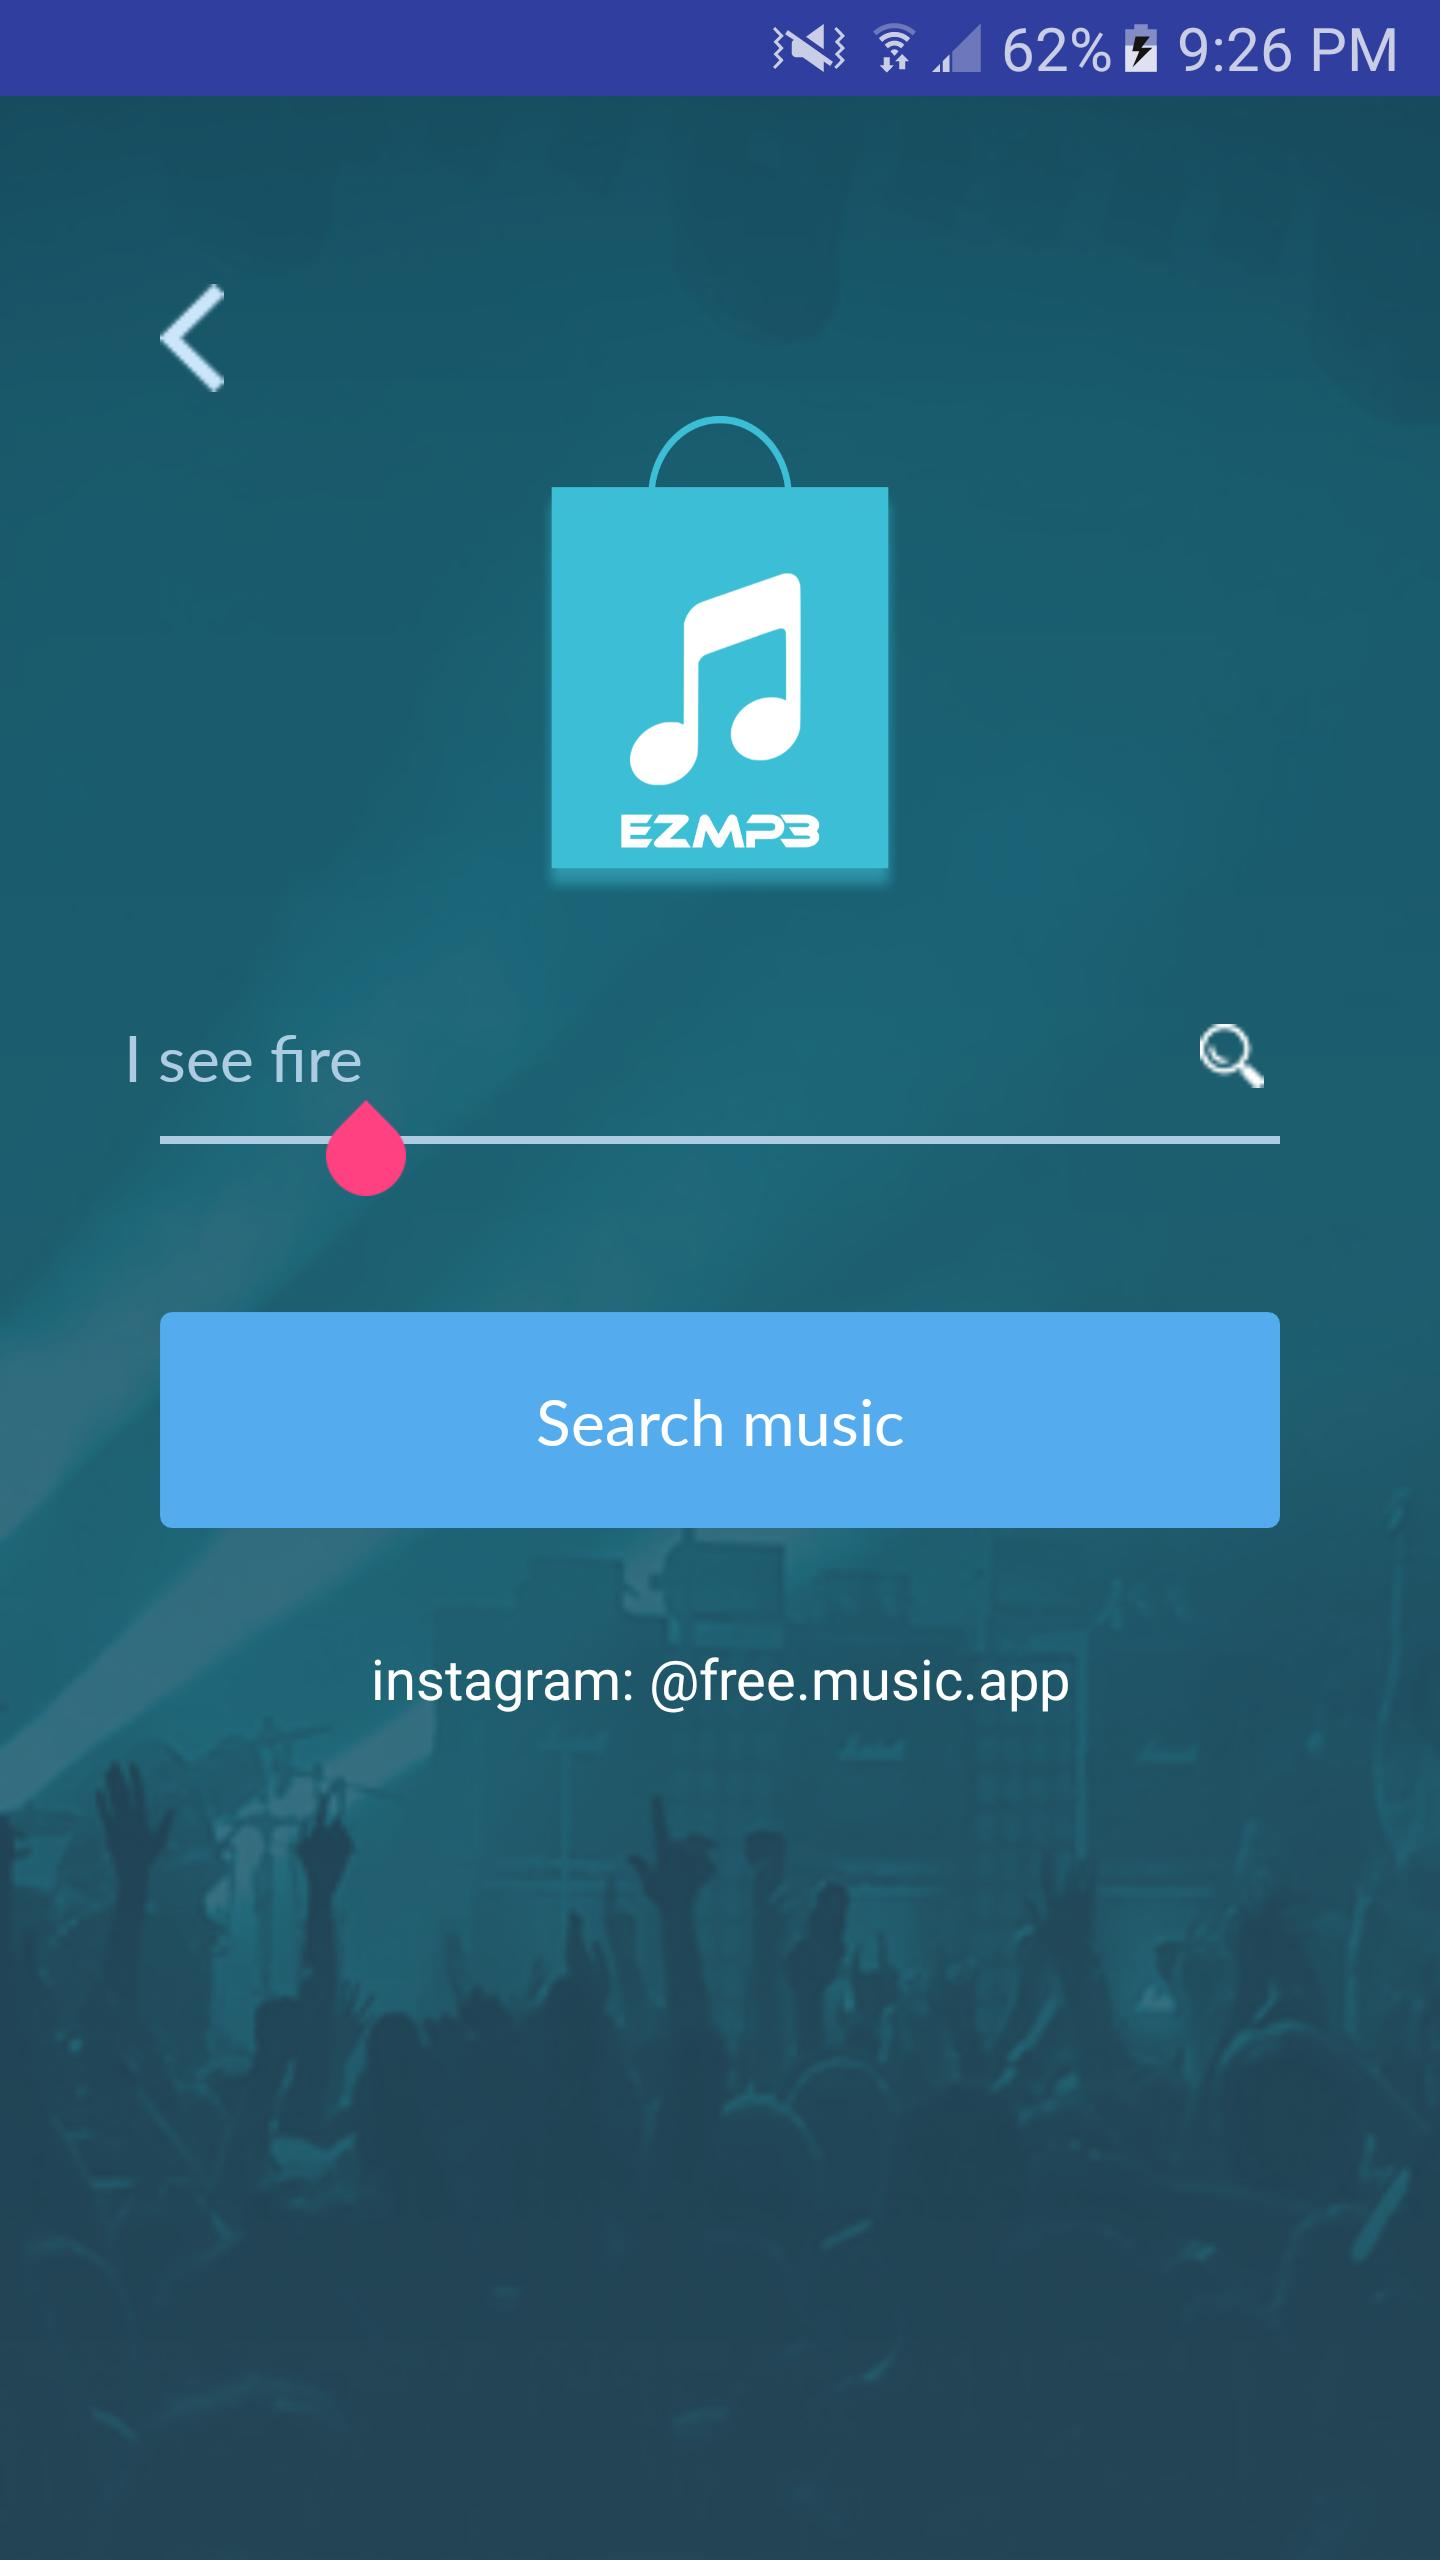 EZMP3 - Free Music App for Android - APK Download